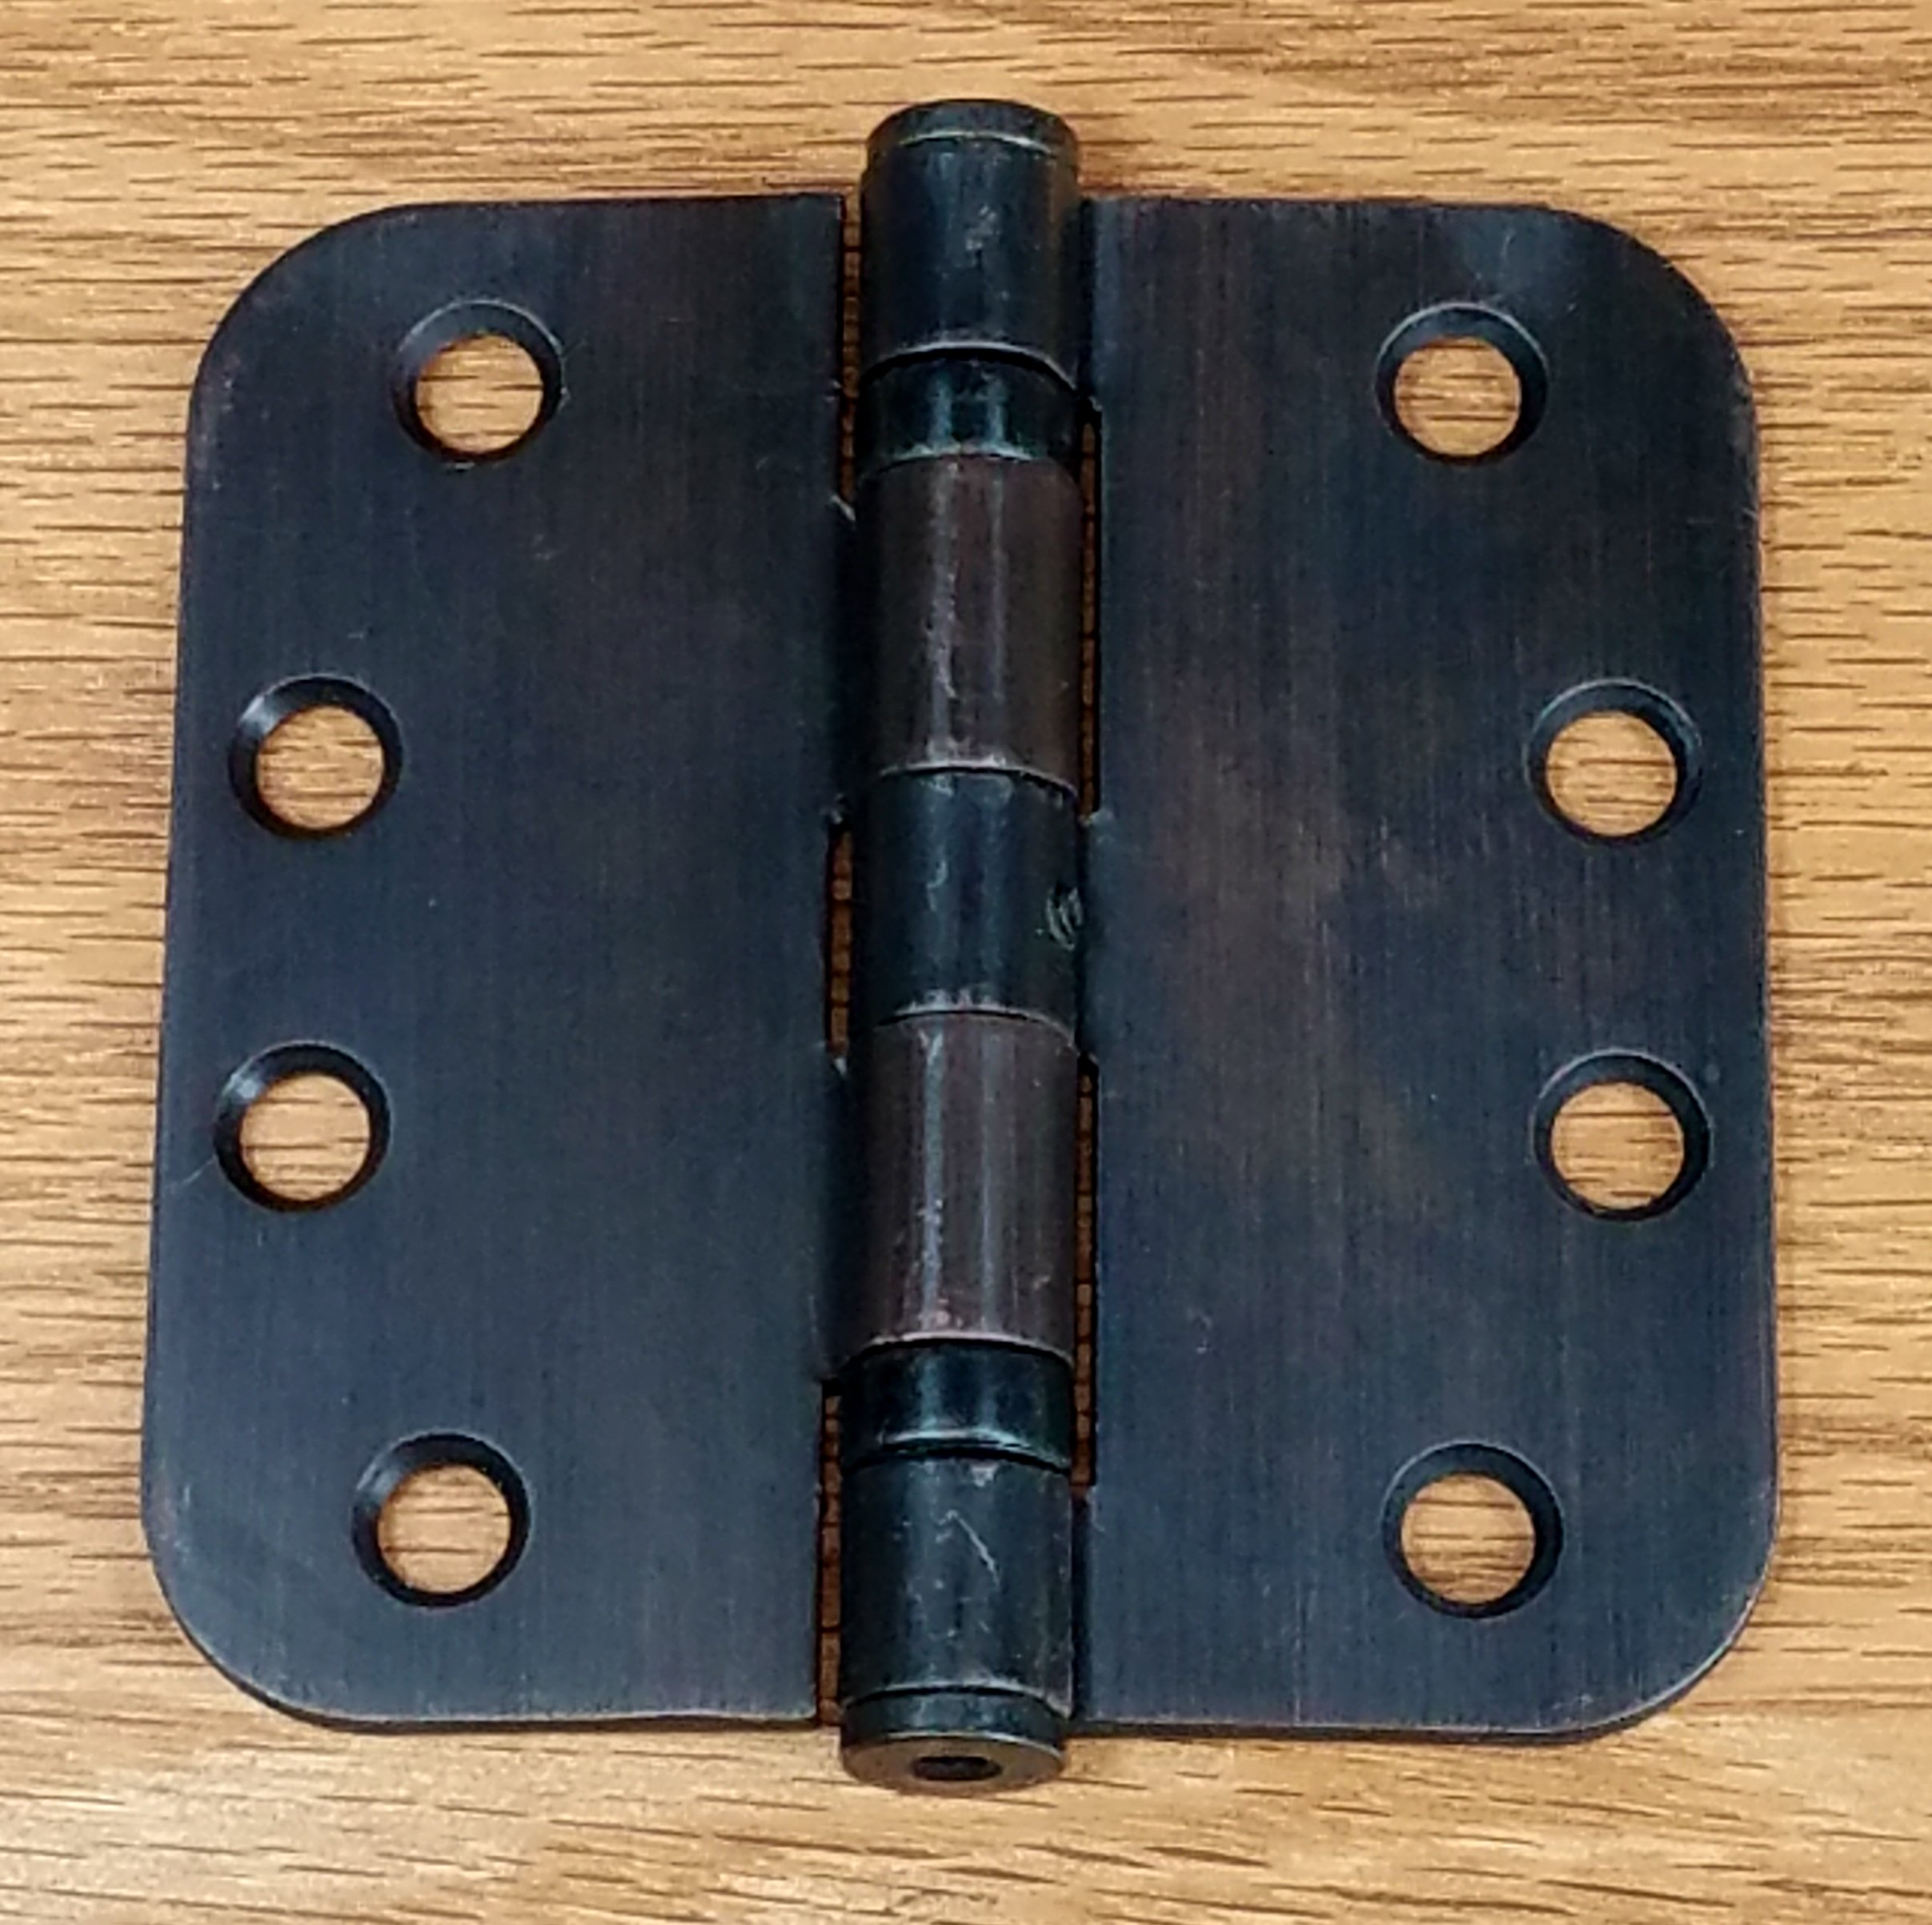 Commercial Door Hinges - 4 Inch with 5/8 Radius - Ball Bearing - Oil Rubbed Bronze - Non Removable Pin - 2 Pack